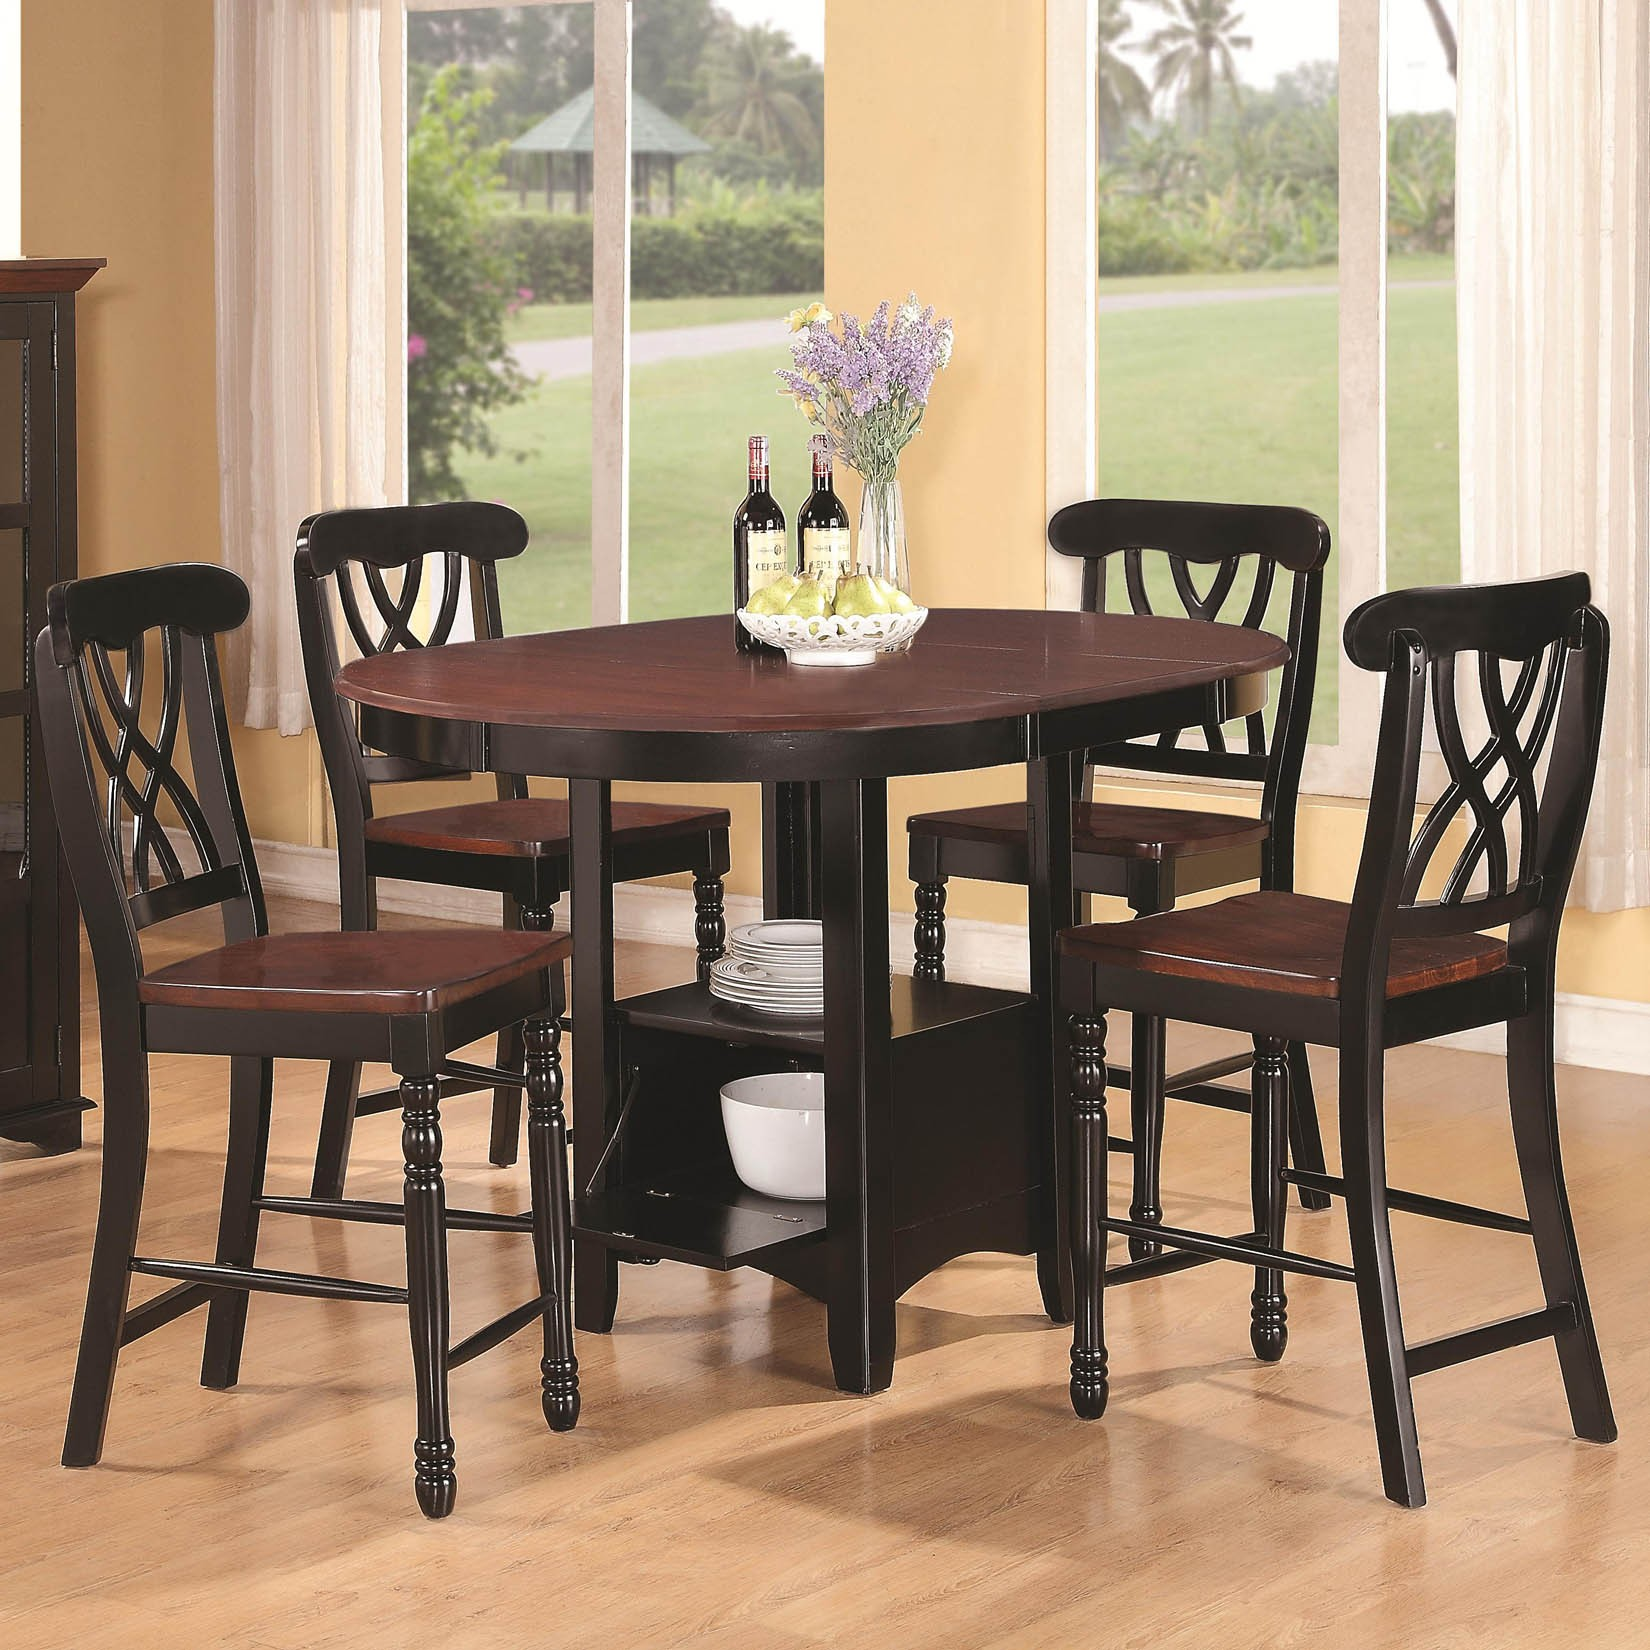 Adorable Round Dining Room Table Sets for 4 - HomesFeed